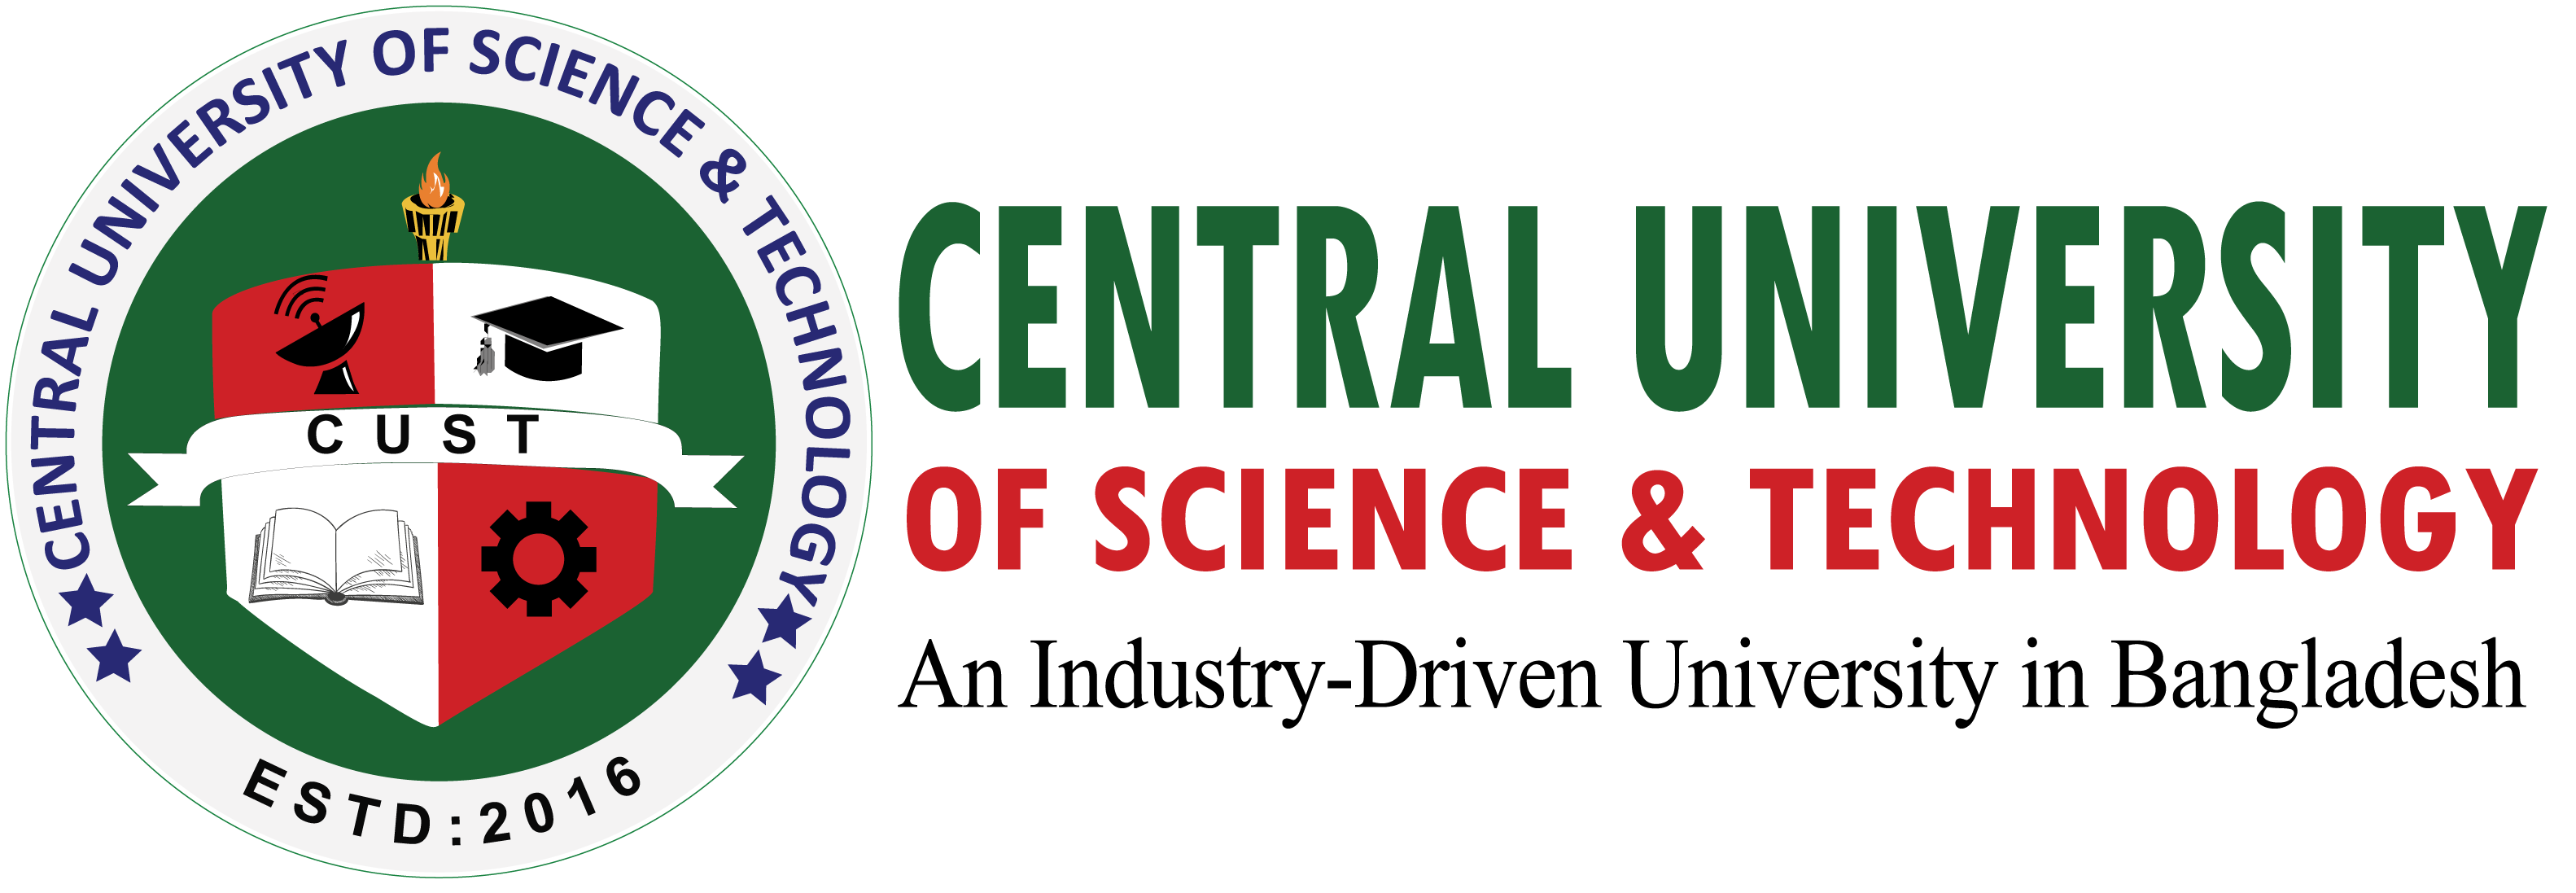 Department of Business Administration Archives - Central University of Science & Technology